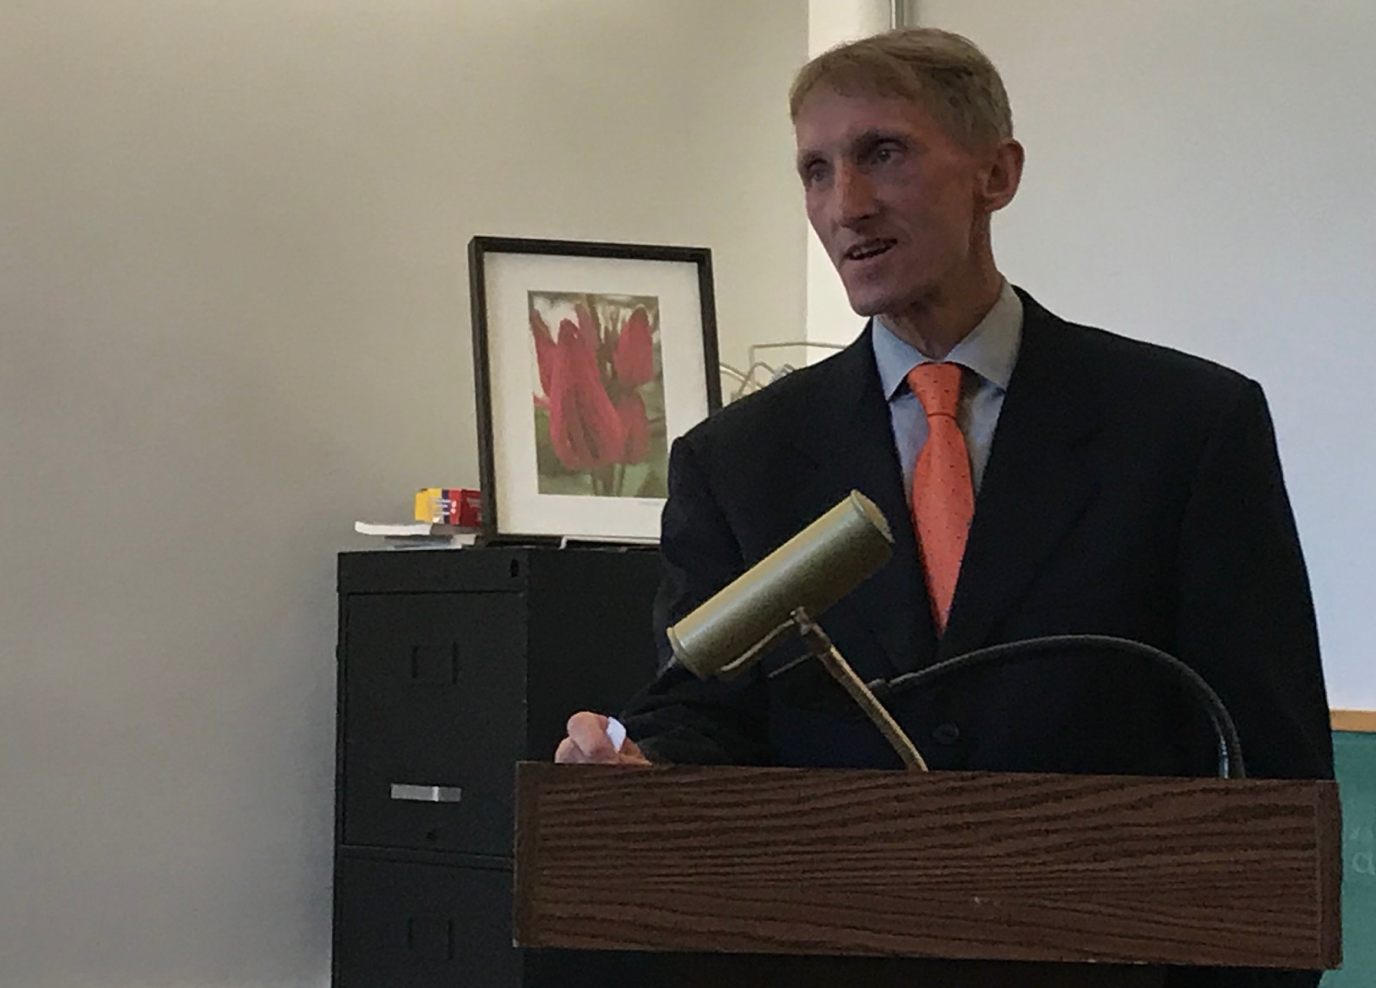 Boston police Commissioner, Bill Evans, who introduced David Hemenway, had to leave early: Someone had been shot....